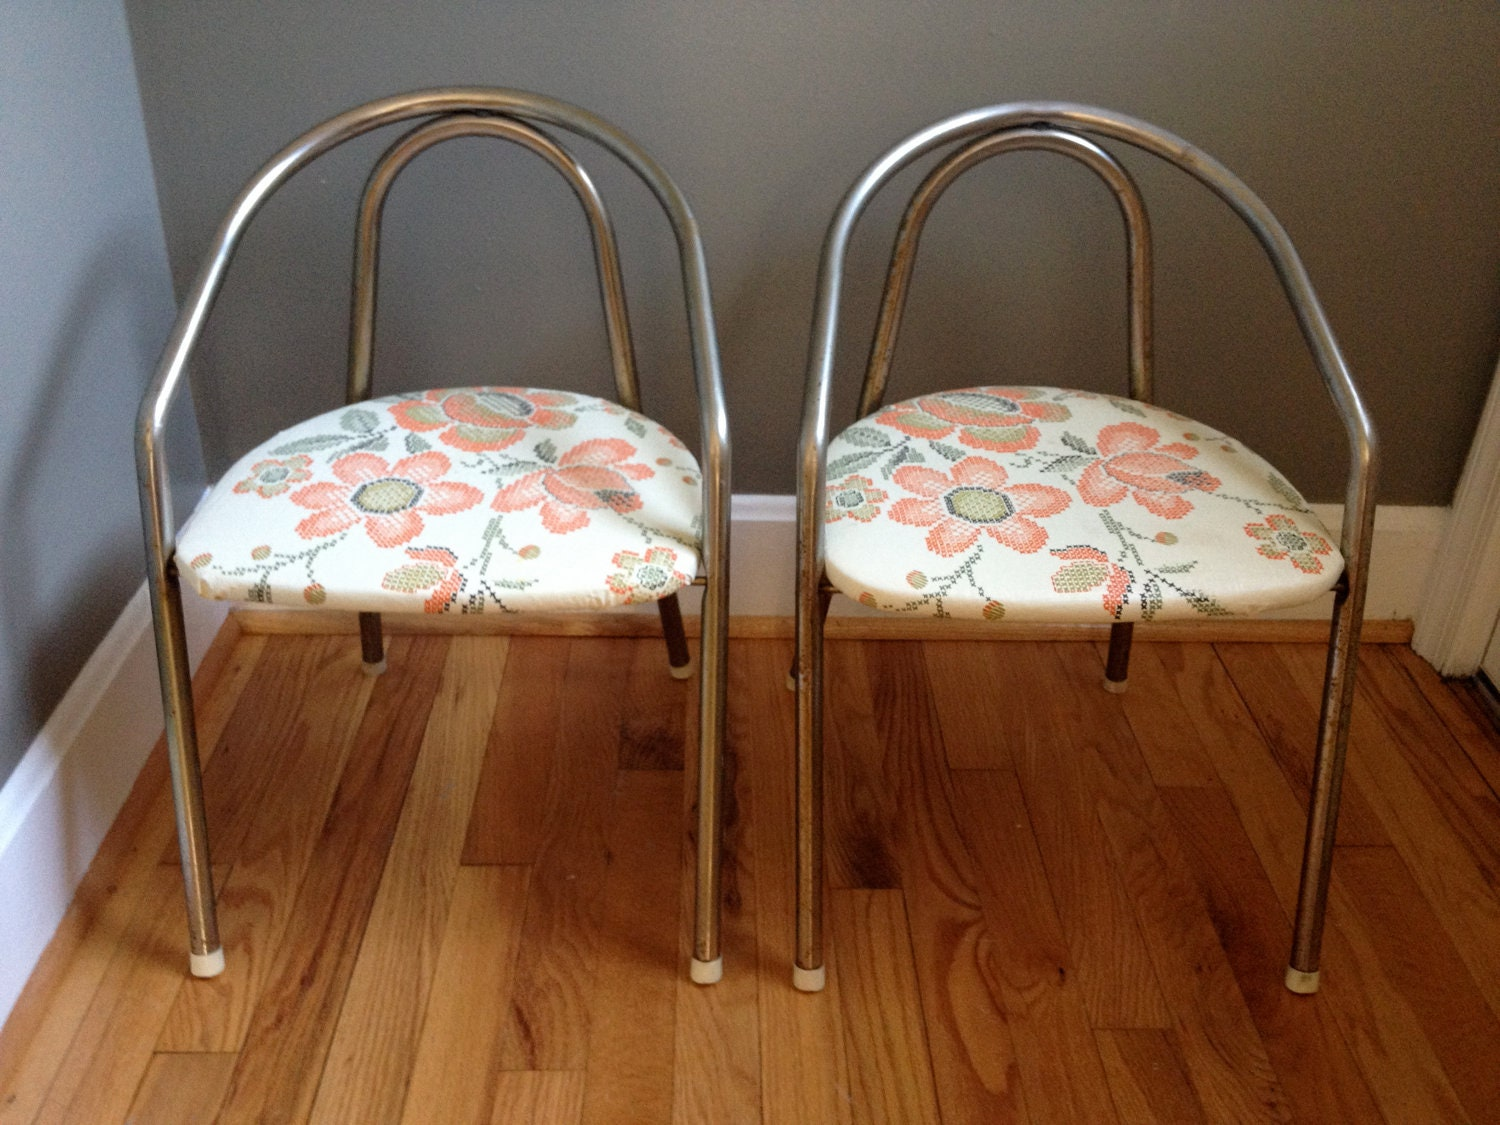 Set of 2 Upcycled Vintage Children's Metal Folding Chairs